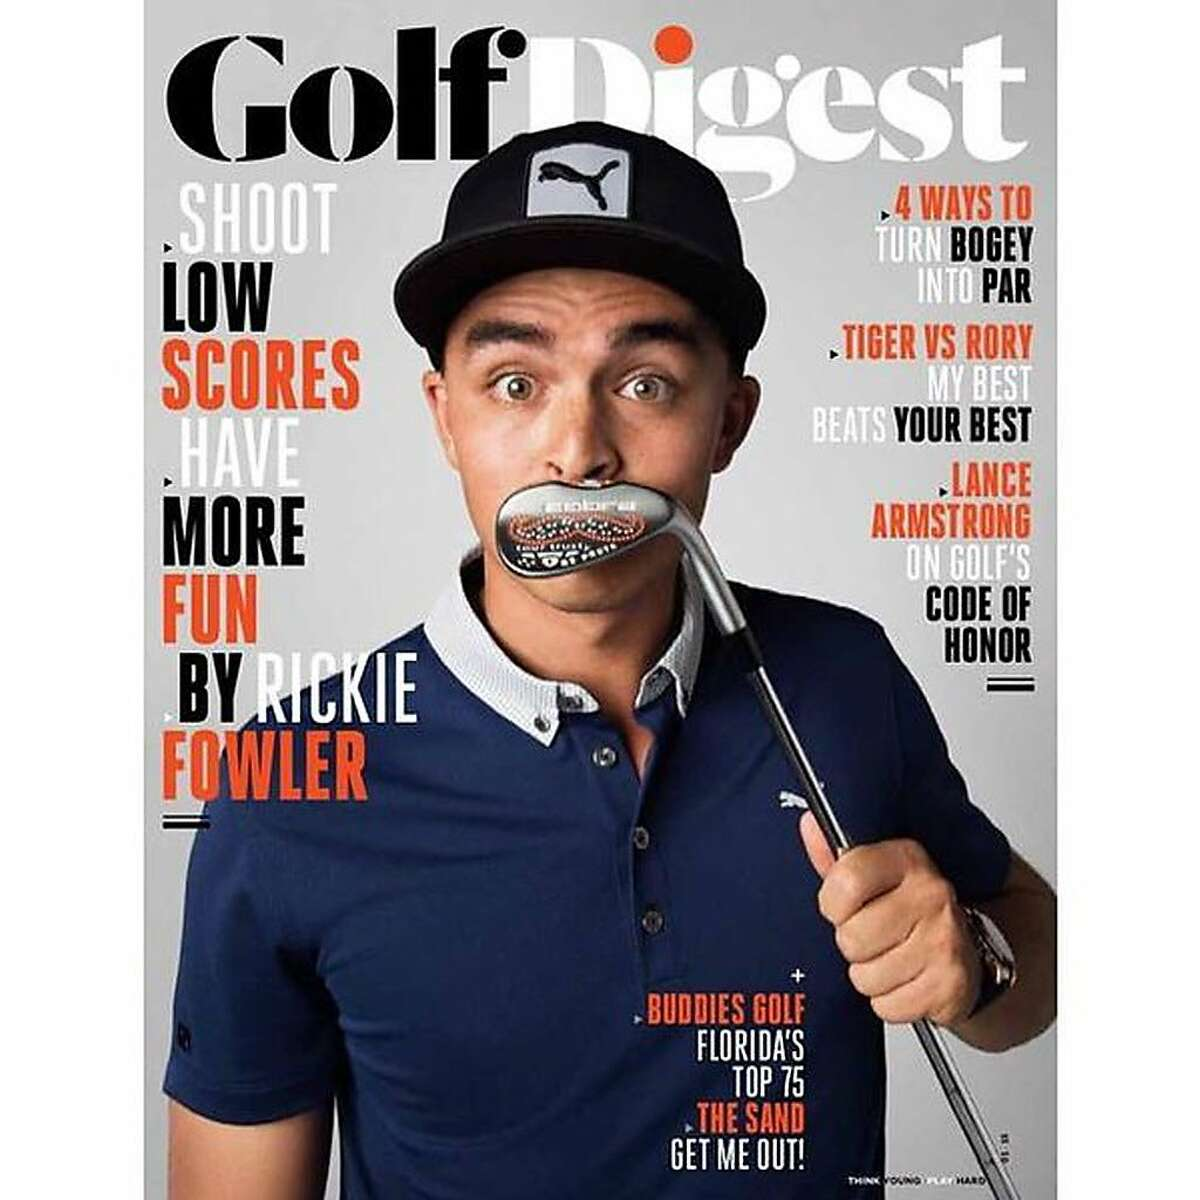 """Brett Viboch once worked at Cobra Golf, where he stamped this """"mustache wedge"""" held by PGA Tour pro Rickie Fowler on the cover of Golf Digest."""